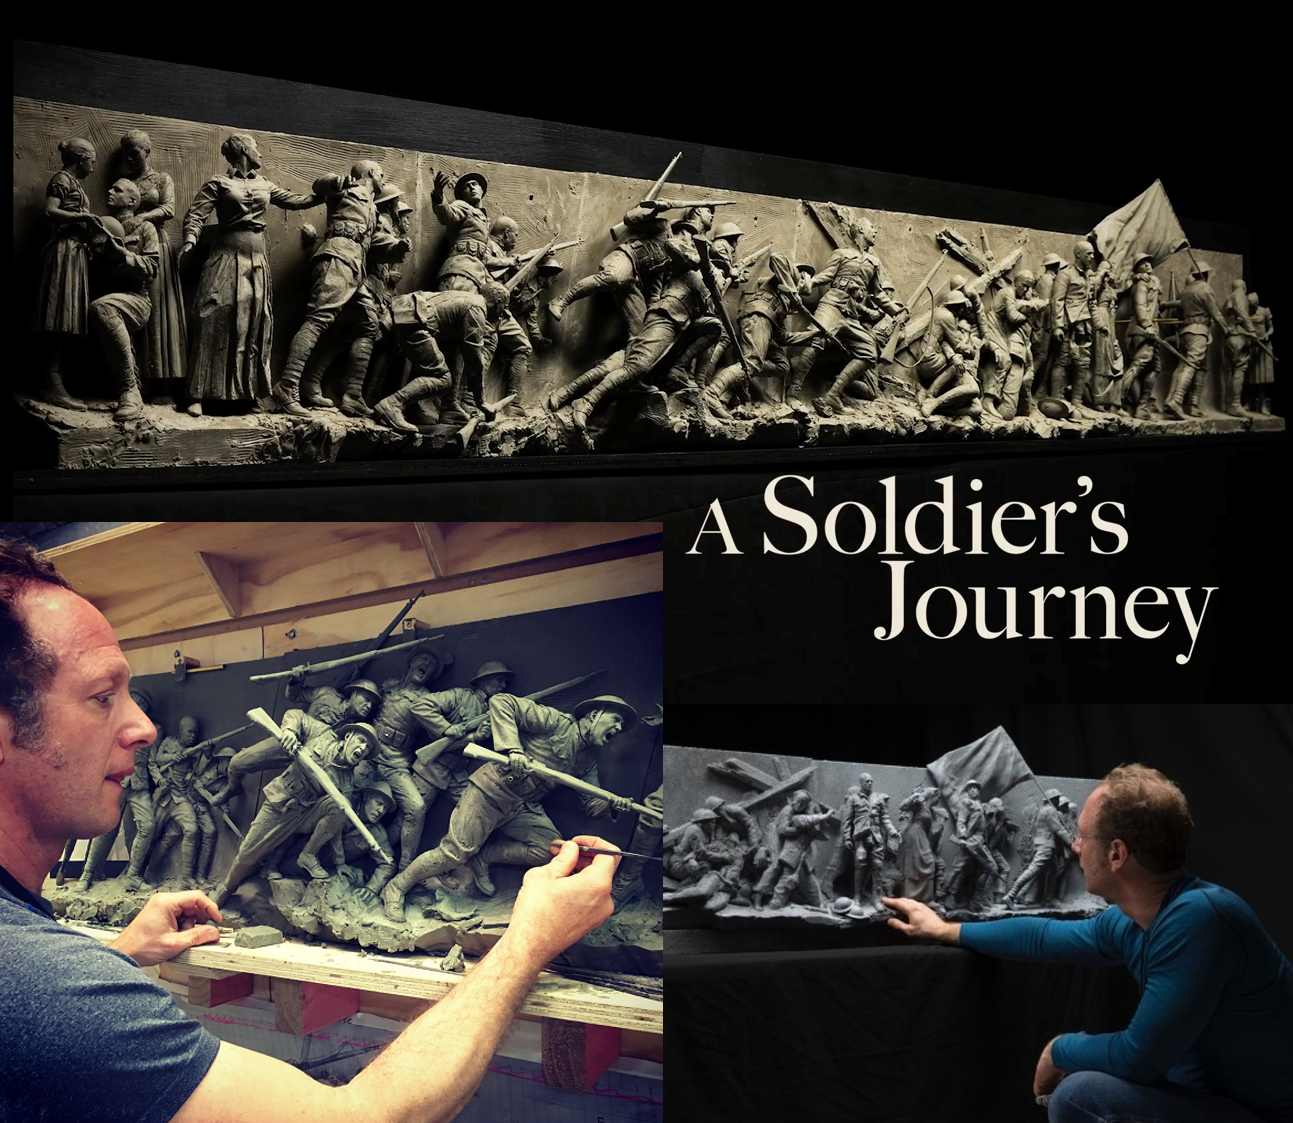 Soldiers Journey group